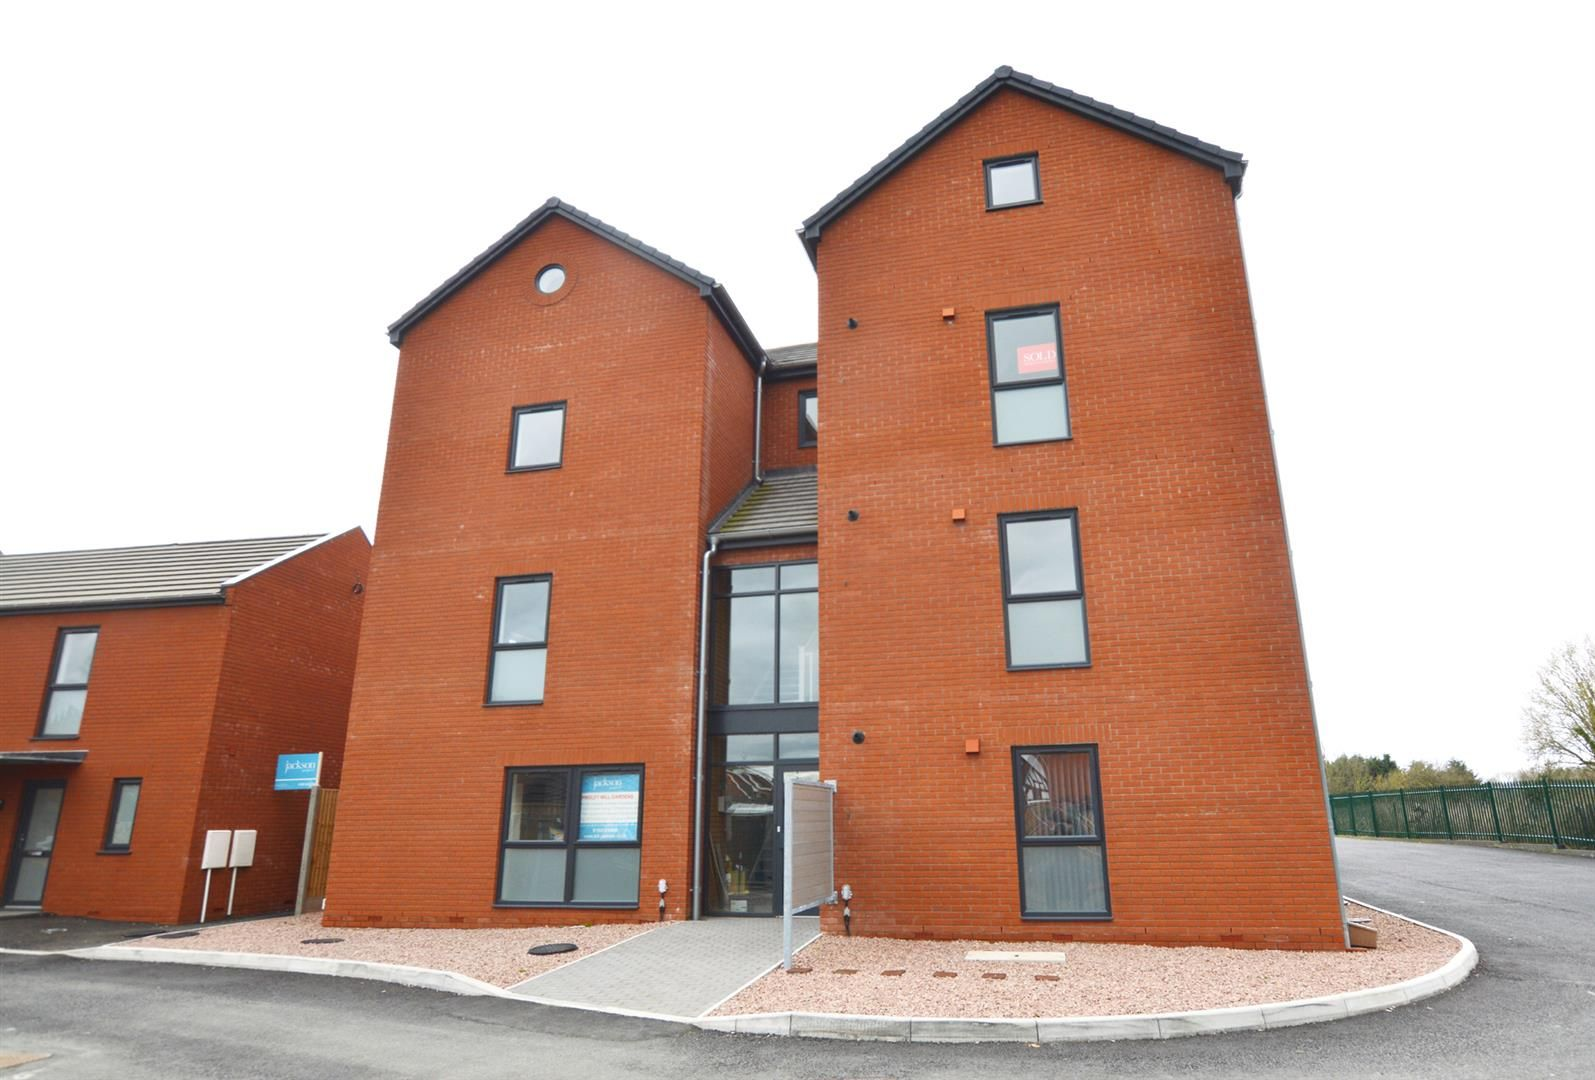 2 bed apartment for sale in Leominster 1